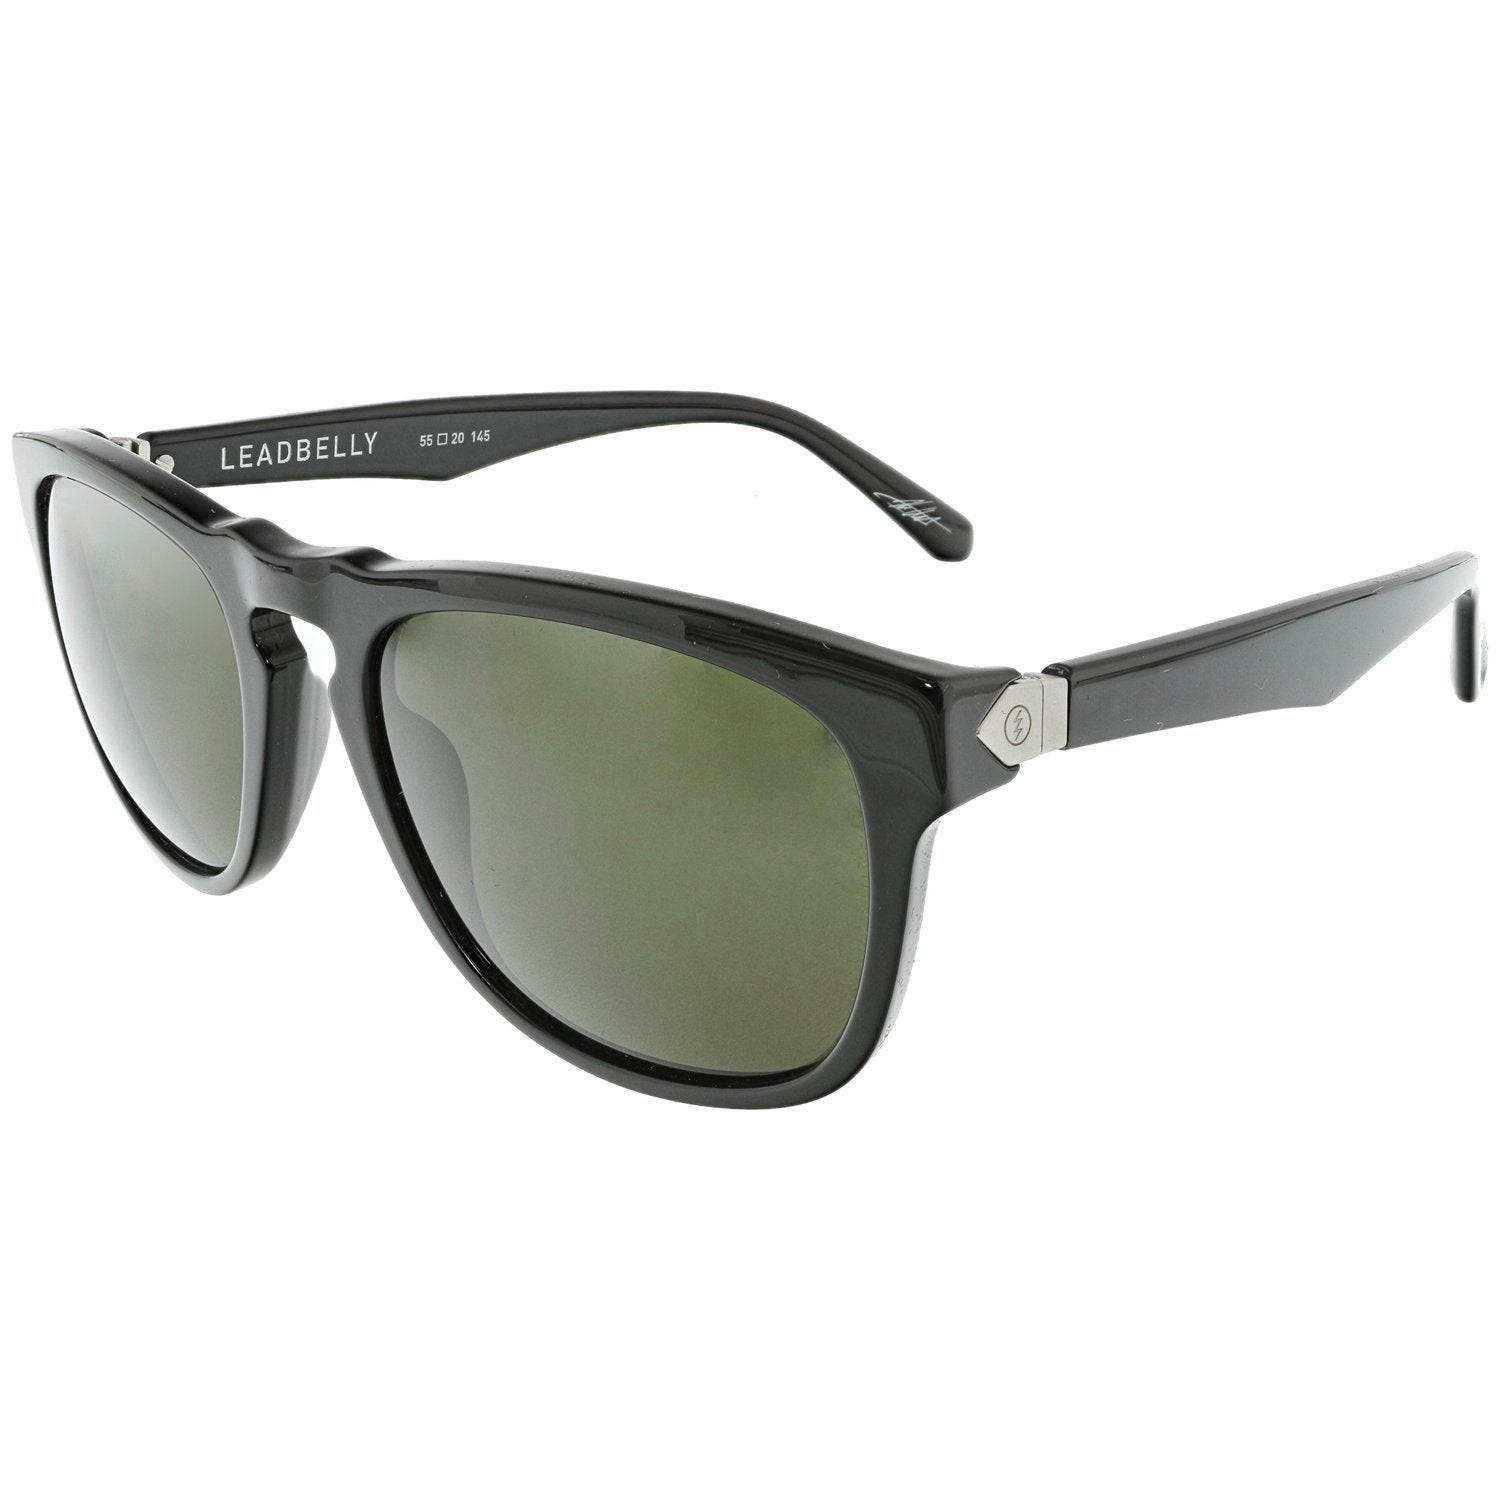 f2537bfb48b0 Shop Electric Men's Leadbelly EE13301601 Grey Rectangle Sunglasses - Free  Shipping Today - Overstock.com - 18892746